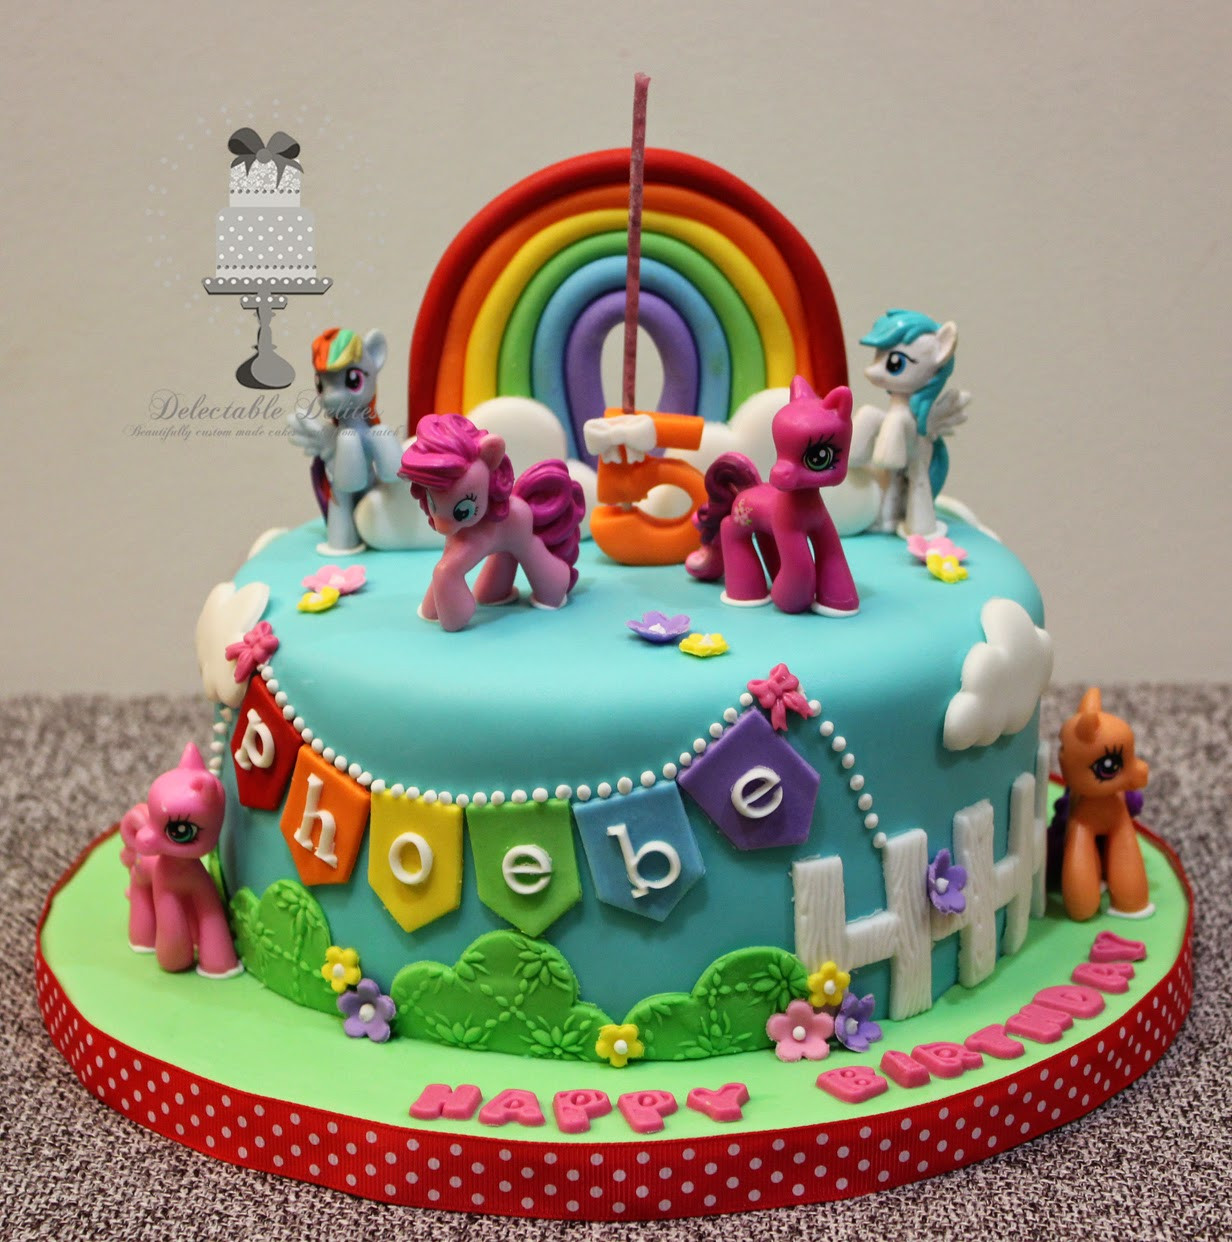 Best ideas about My Little Pony Birthday Cake . Save or Pin Delectable Delites My Little Pony cake for Phoebe s 5th Now.